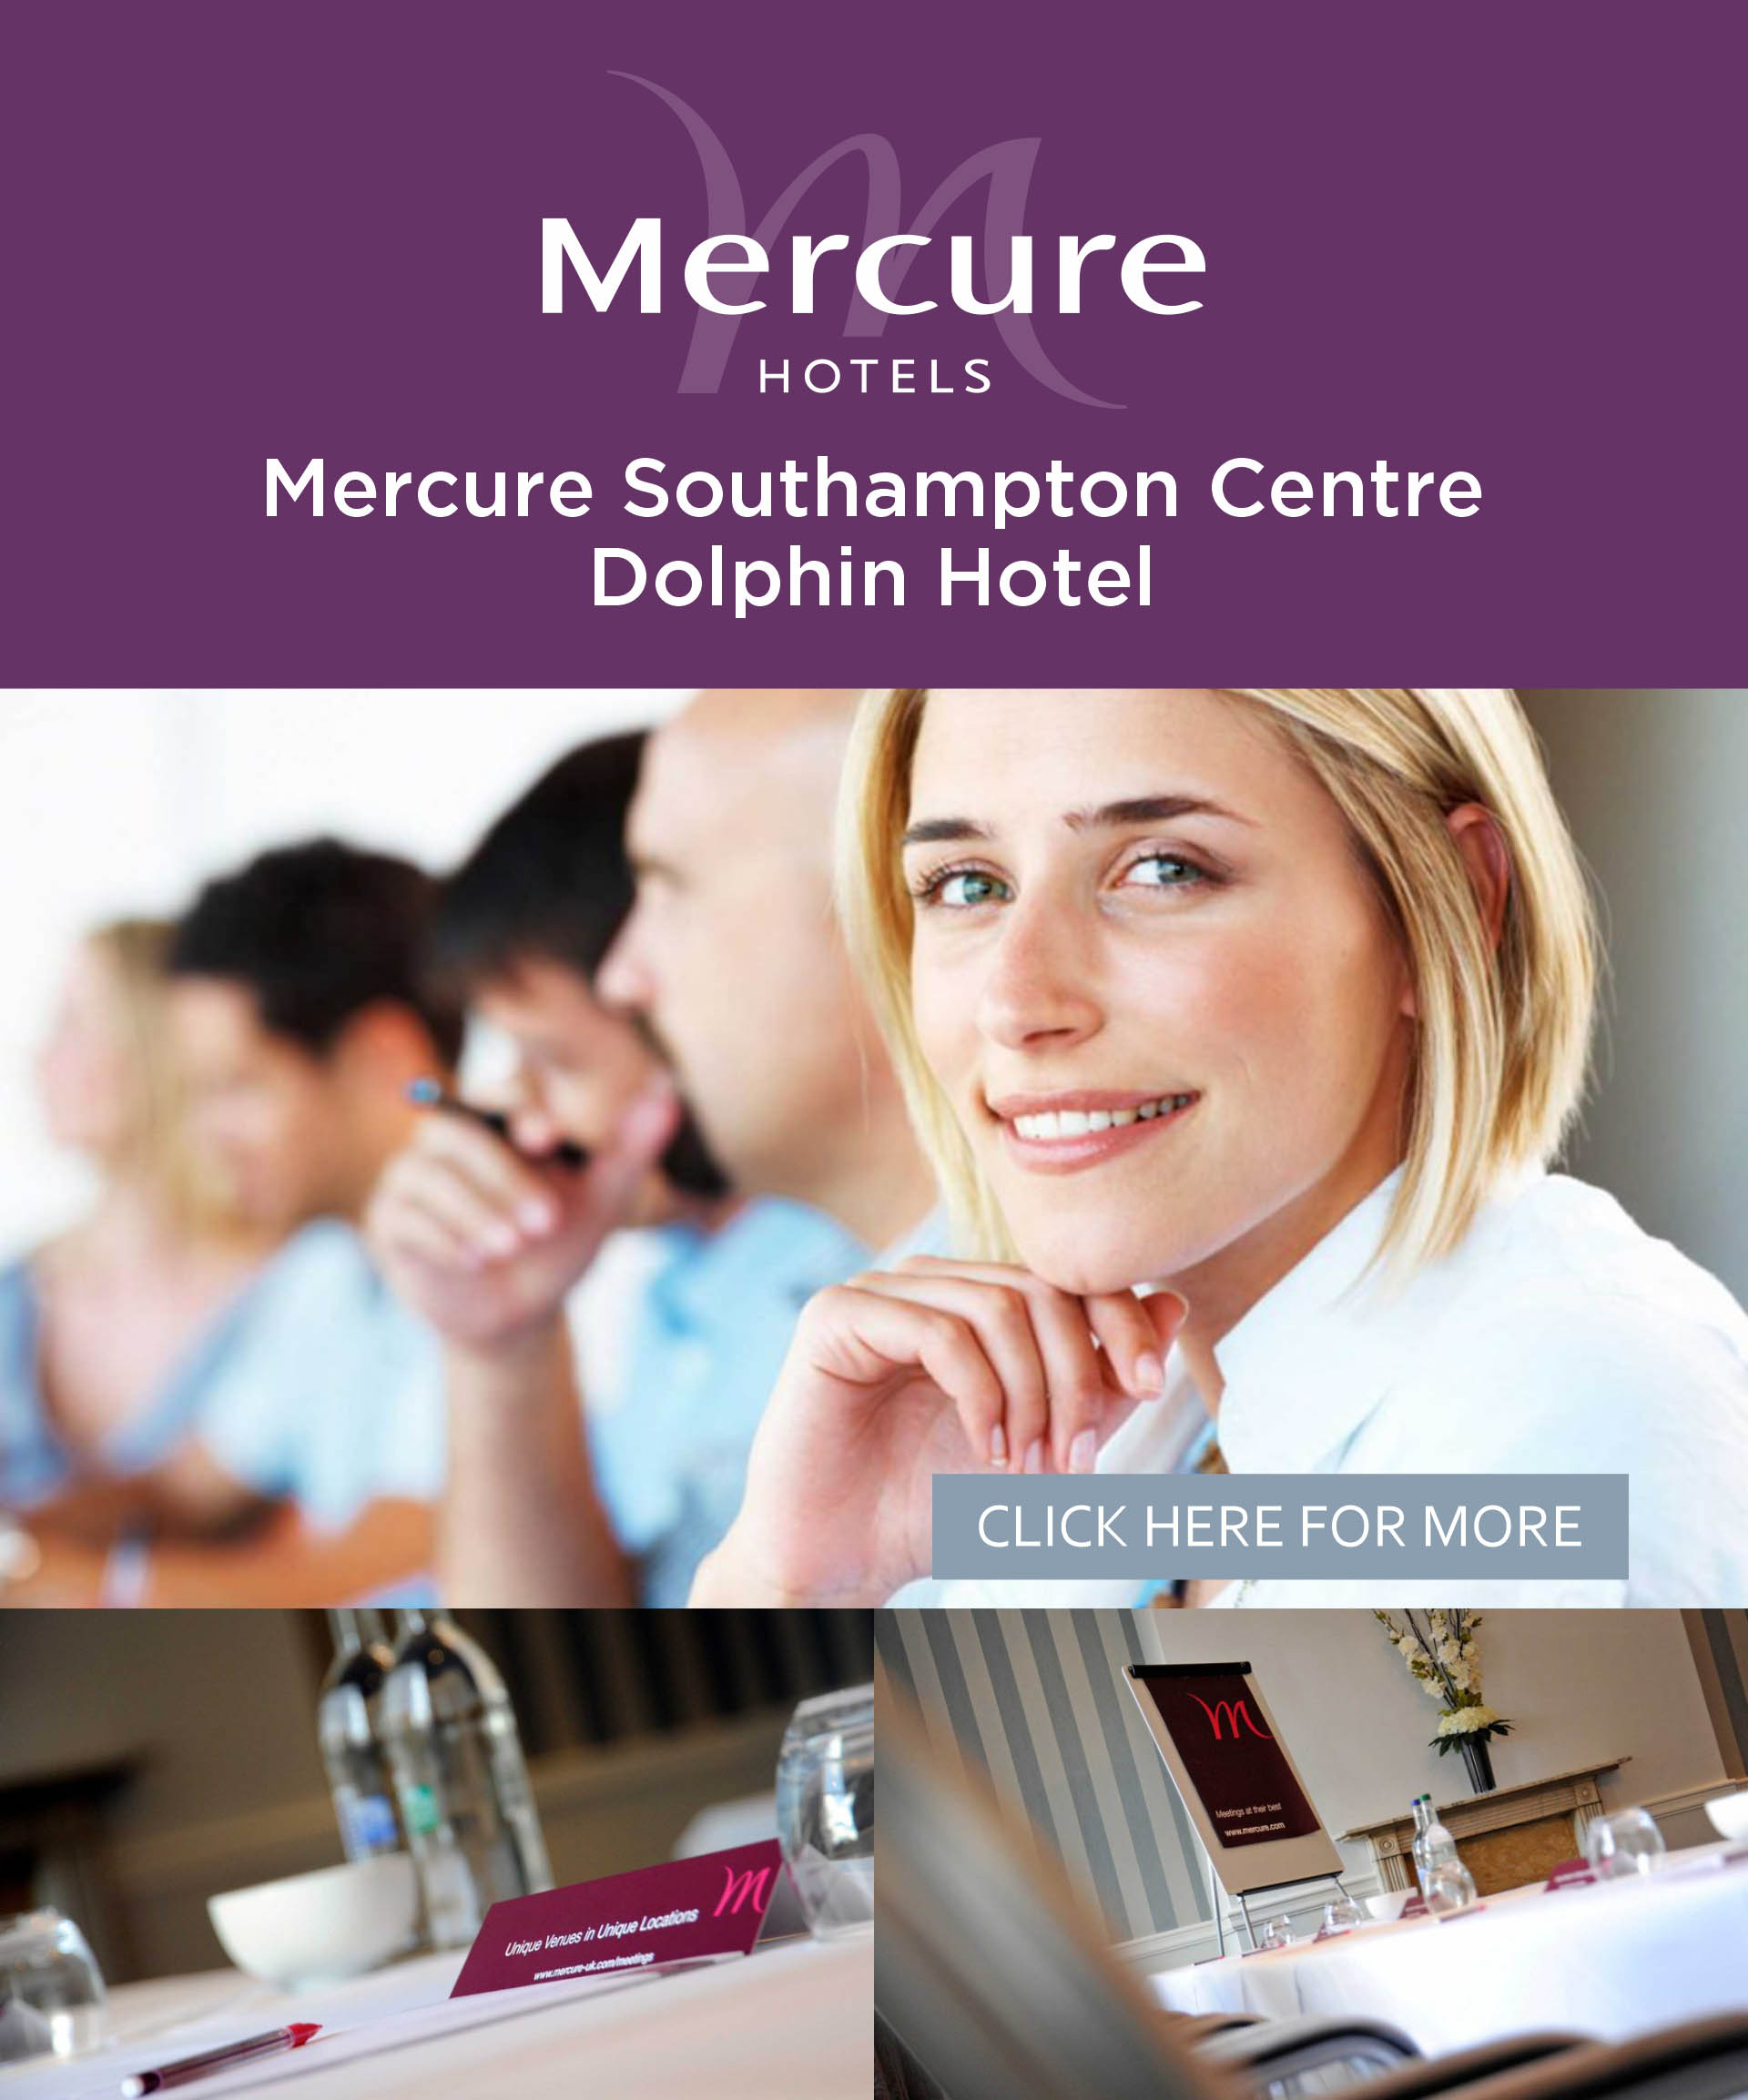 Mercure Southampton Centre Dolphin Hotel meeting offer